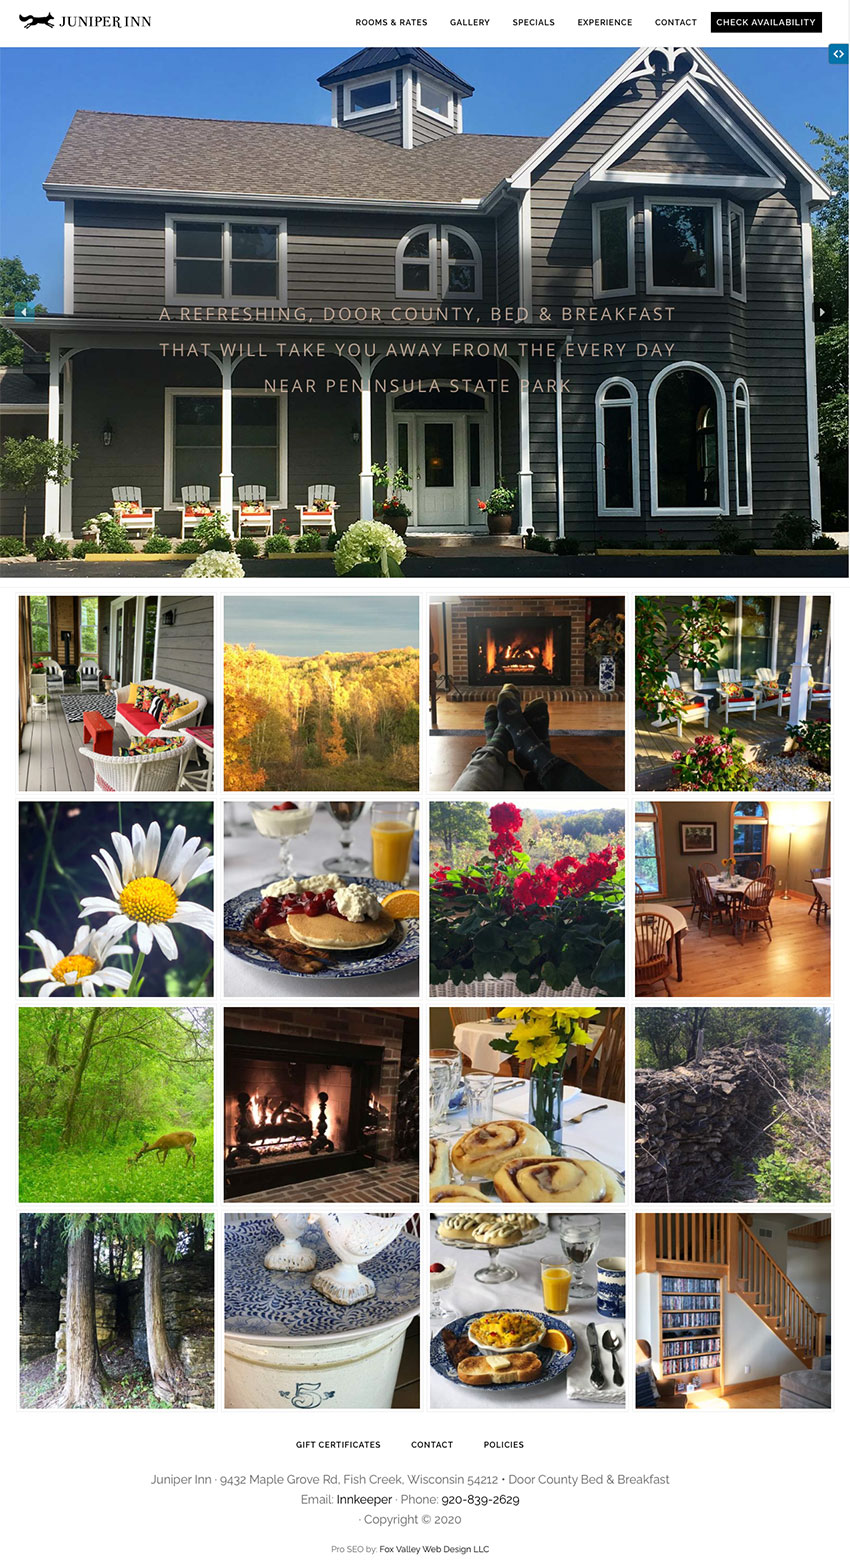 juniper inn, fish creek,wisconsin,door county bed & breakfast,fish creek bed and breakfast,bed & breakfast web design,lodging website designers,web developers near me,wisconsin web developers, seo,fox valley web design,door county web design